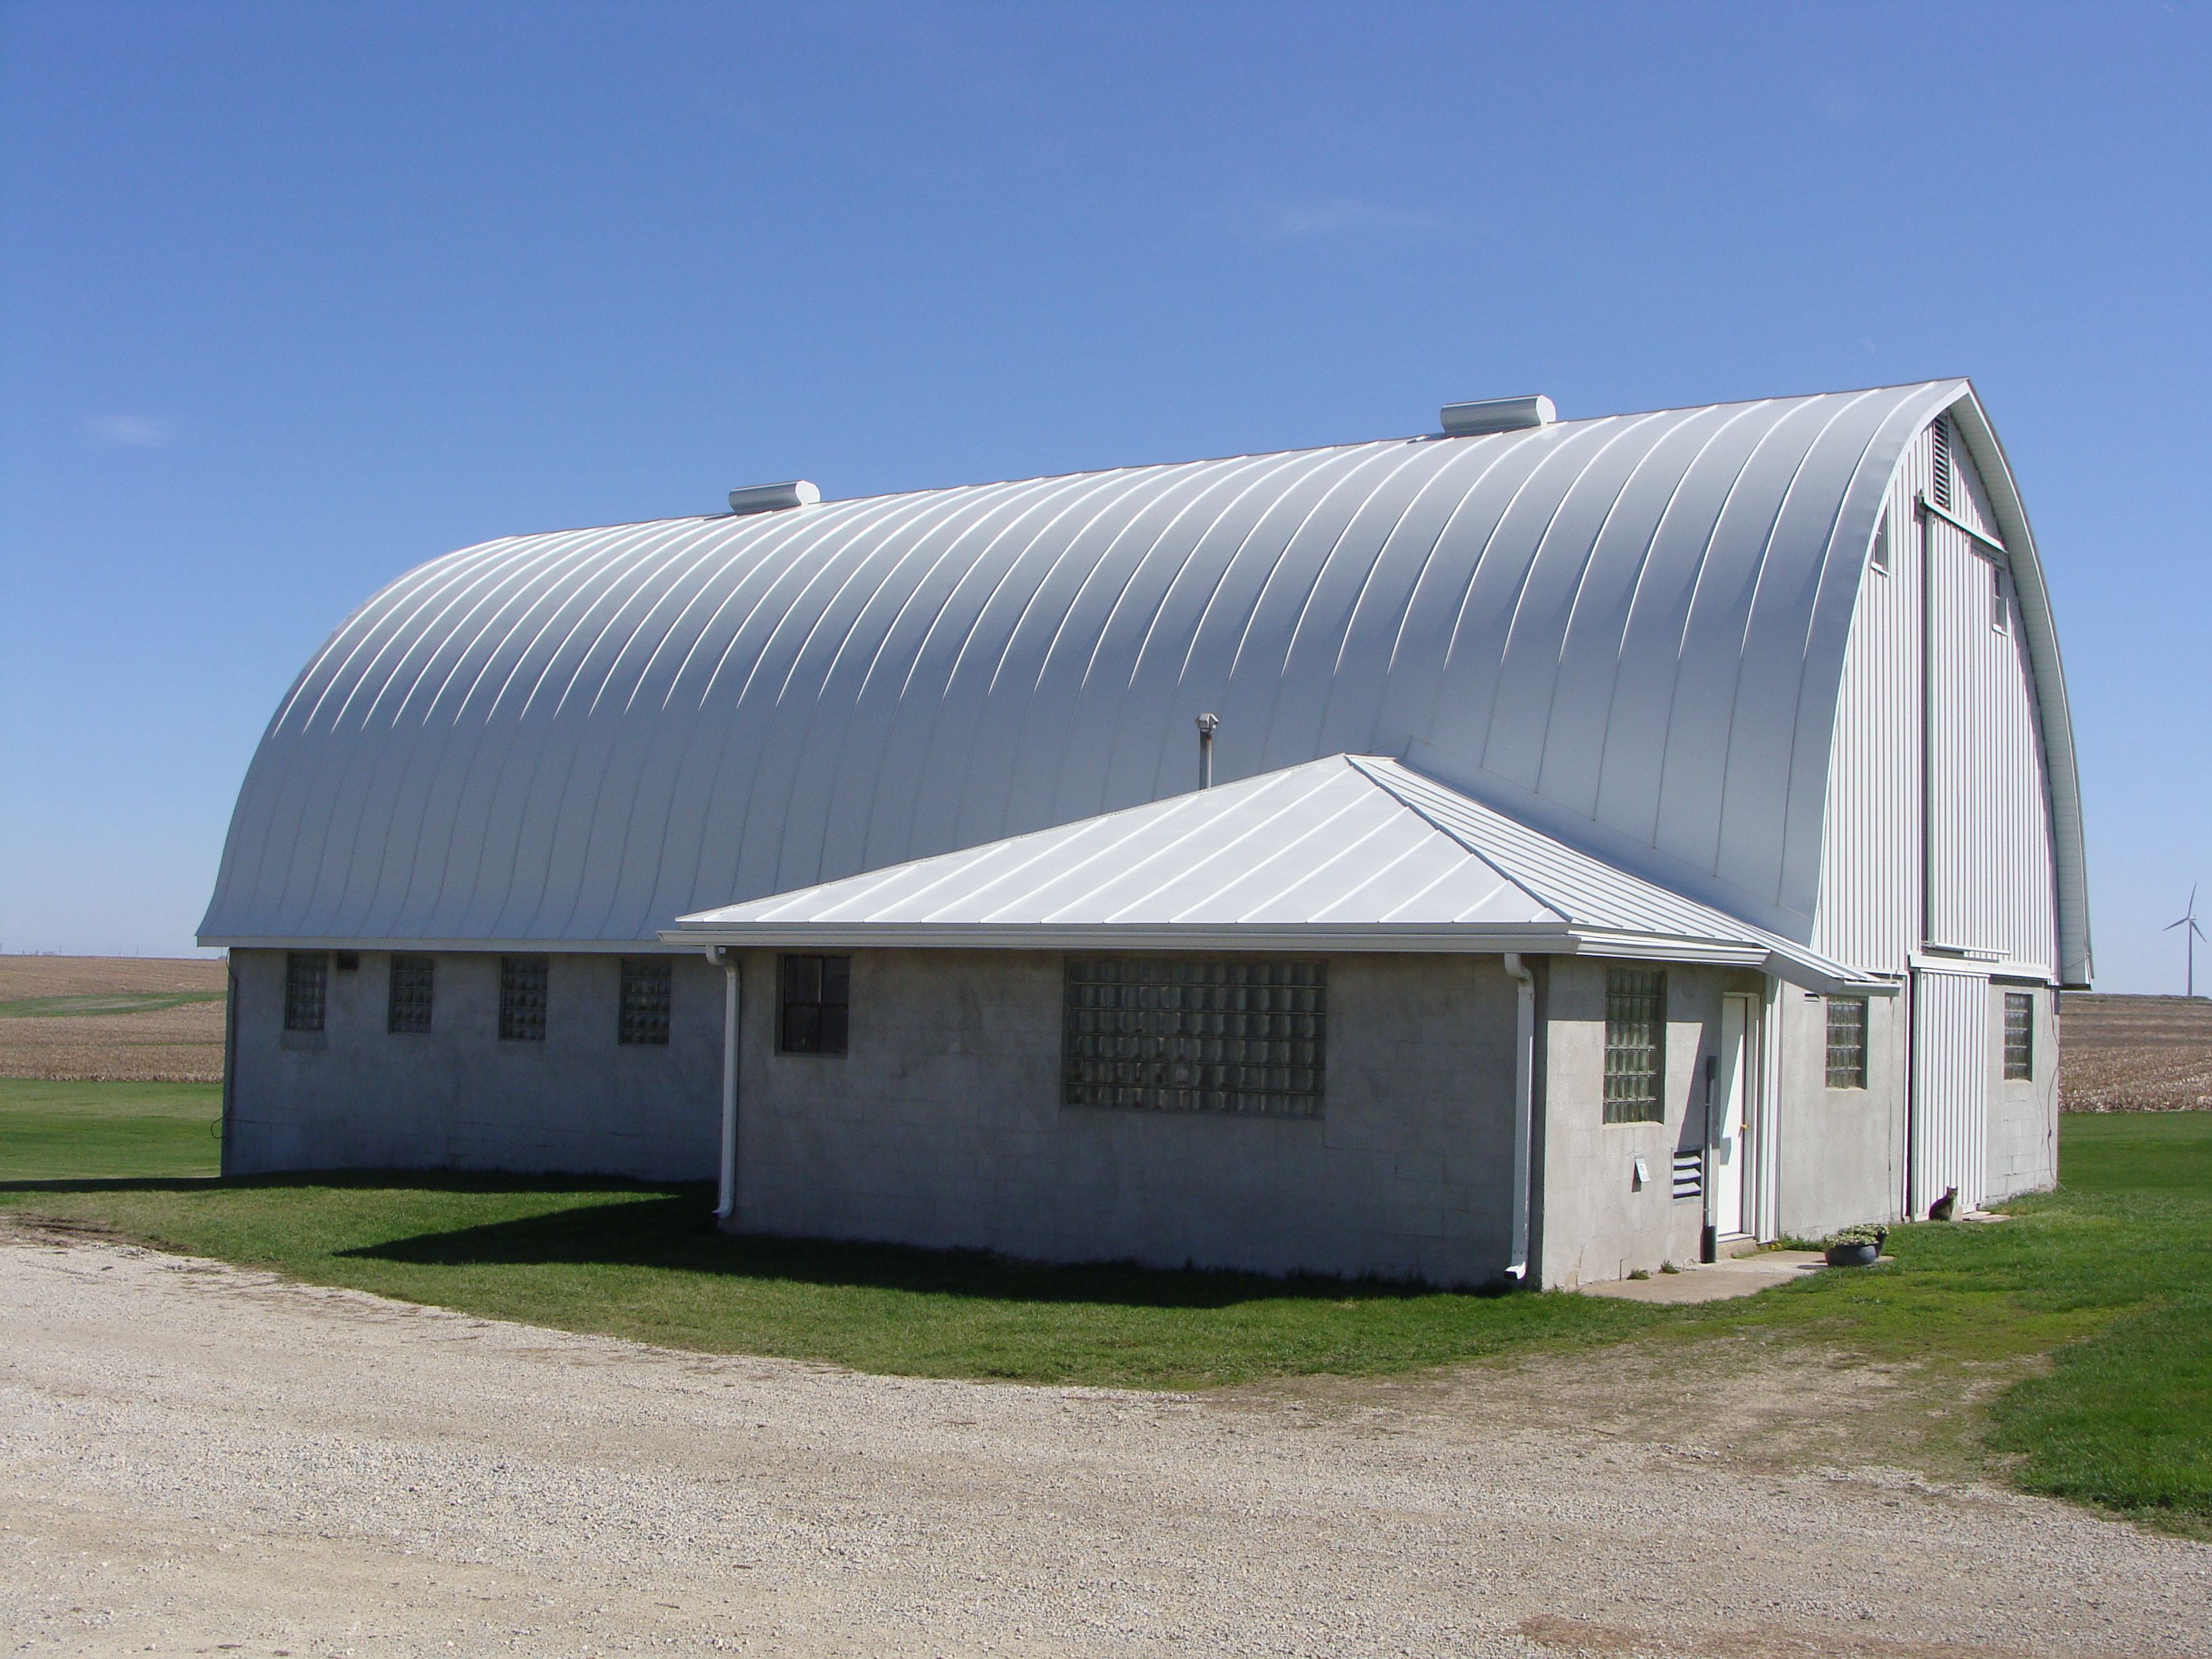 standing seam sheet metal roofing gothic bright white barn agricultural wisconsin minnesota iowa illinois north dakota culpitt